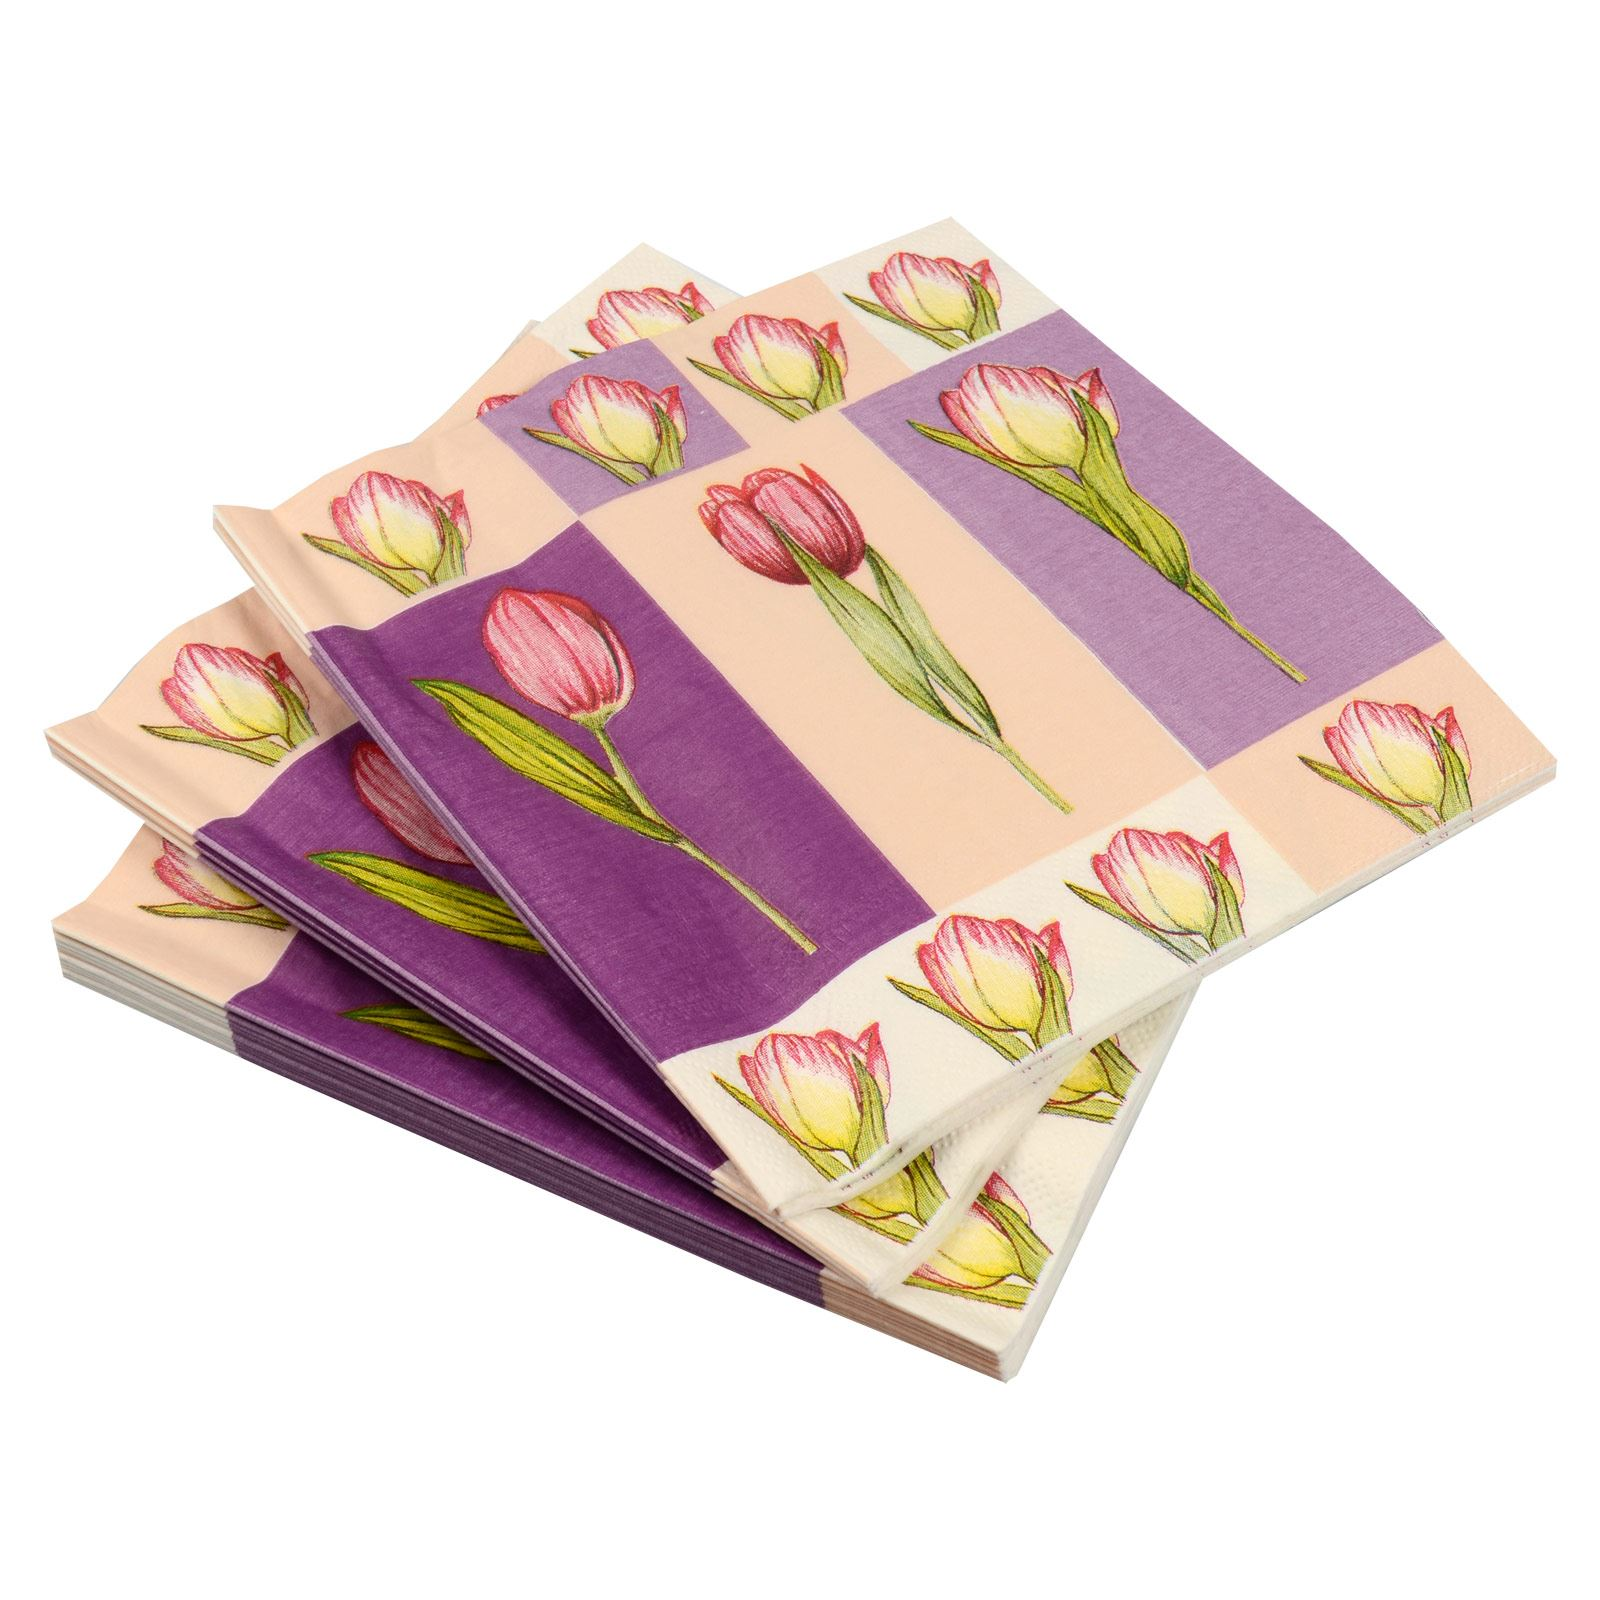 6 12 one square Background is white 3ply 13 open Pink Roses and buds paper napkins